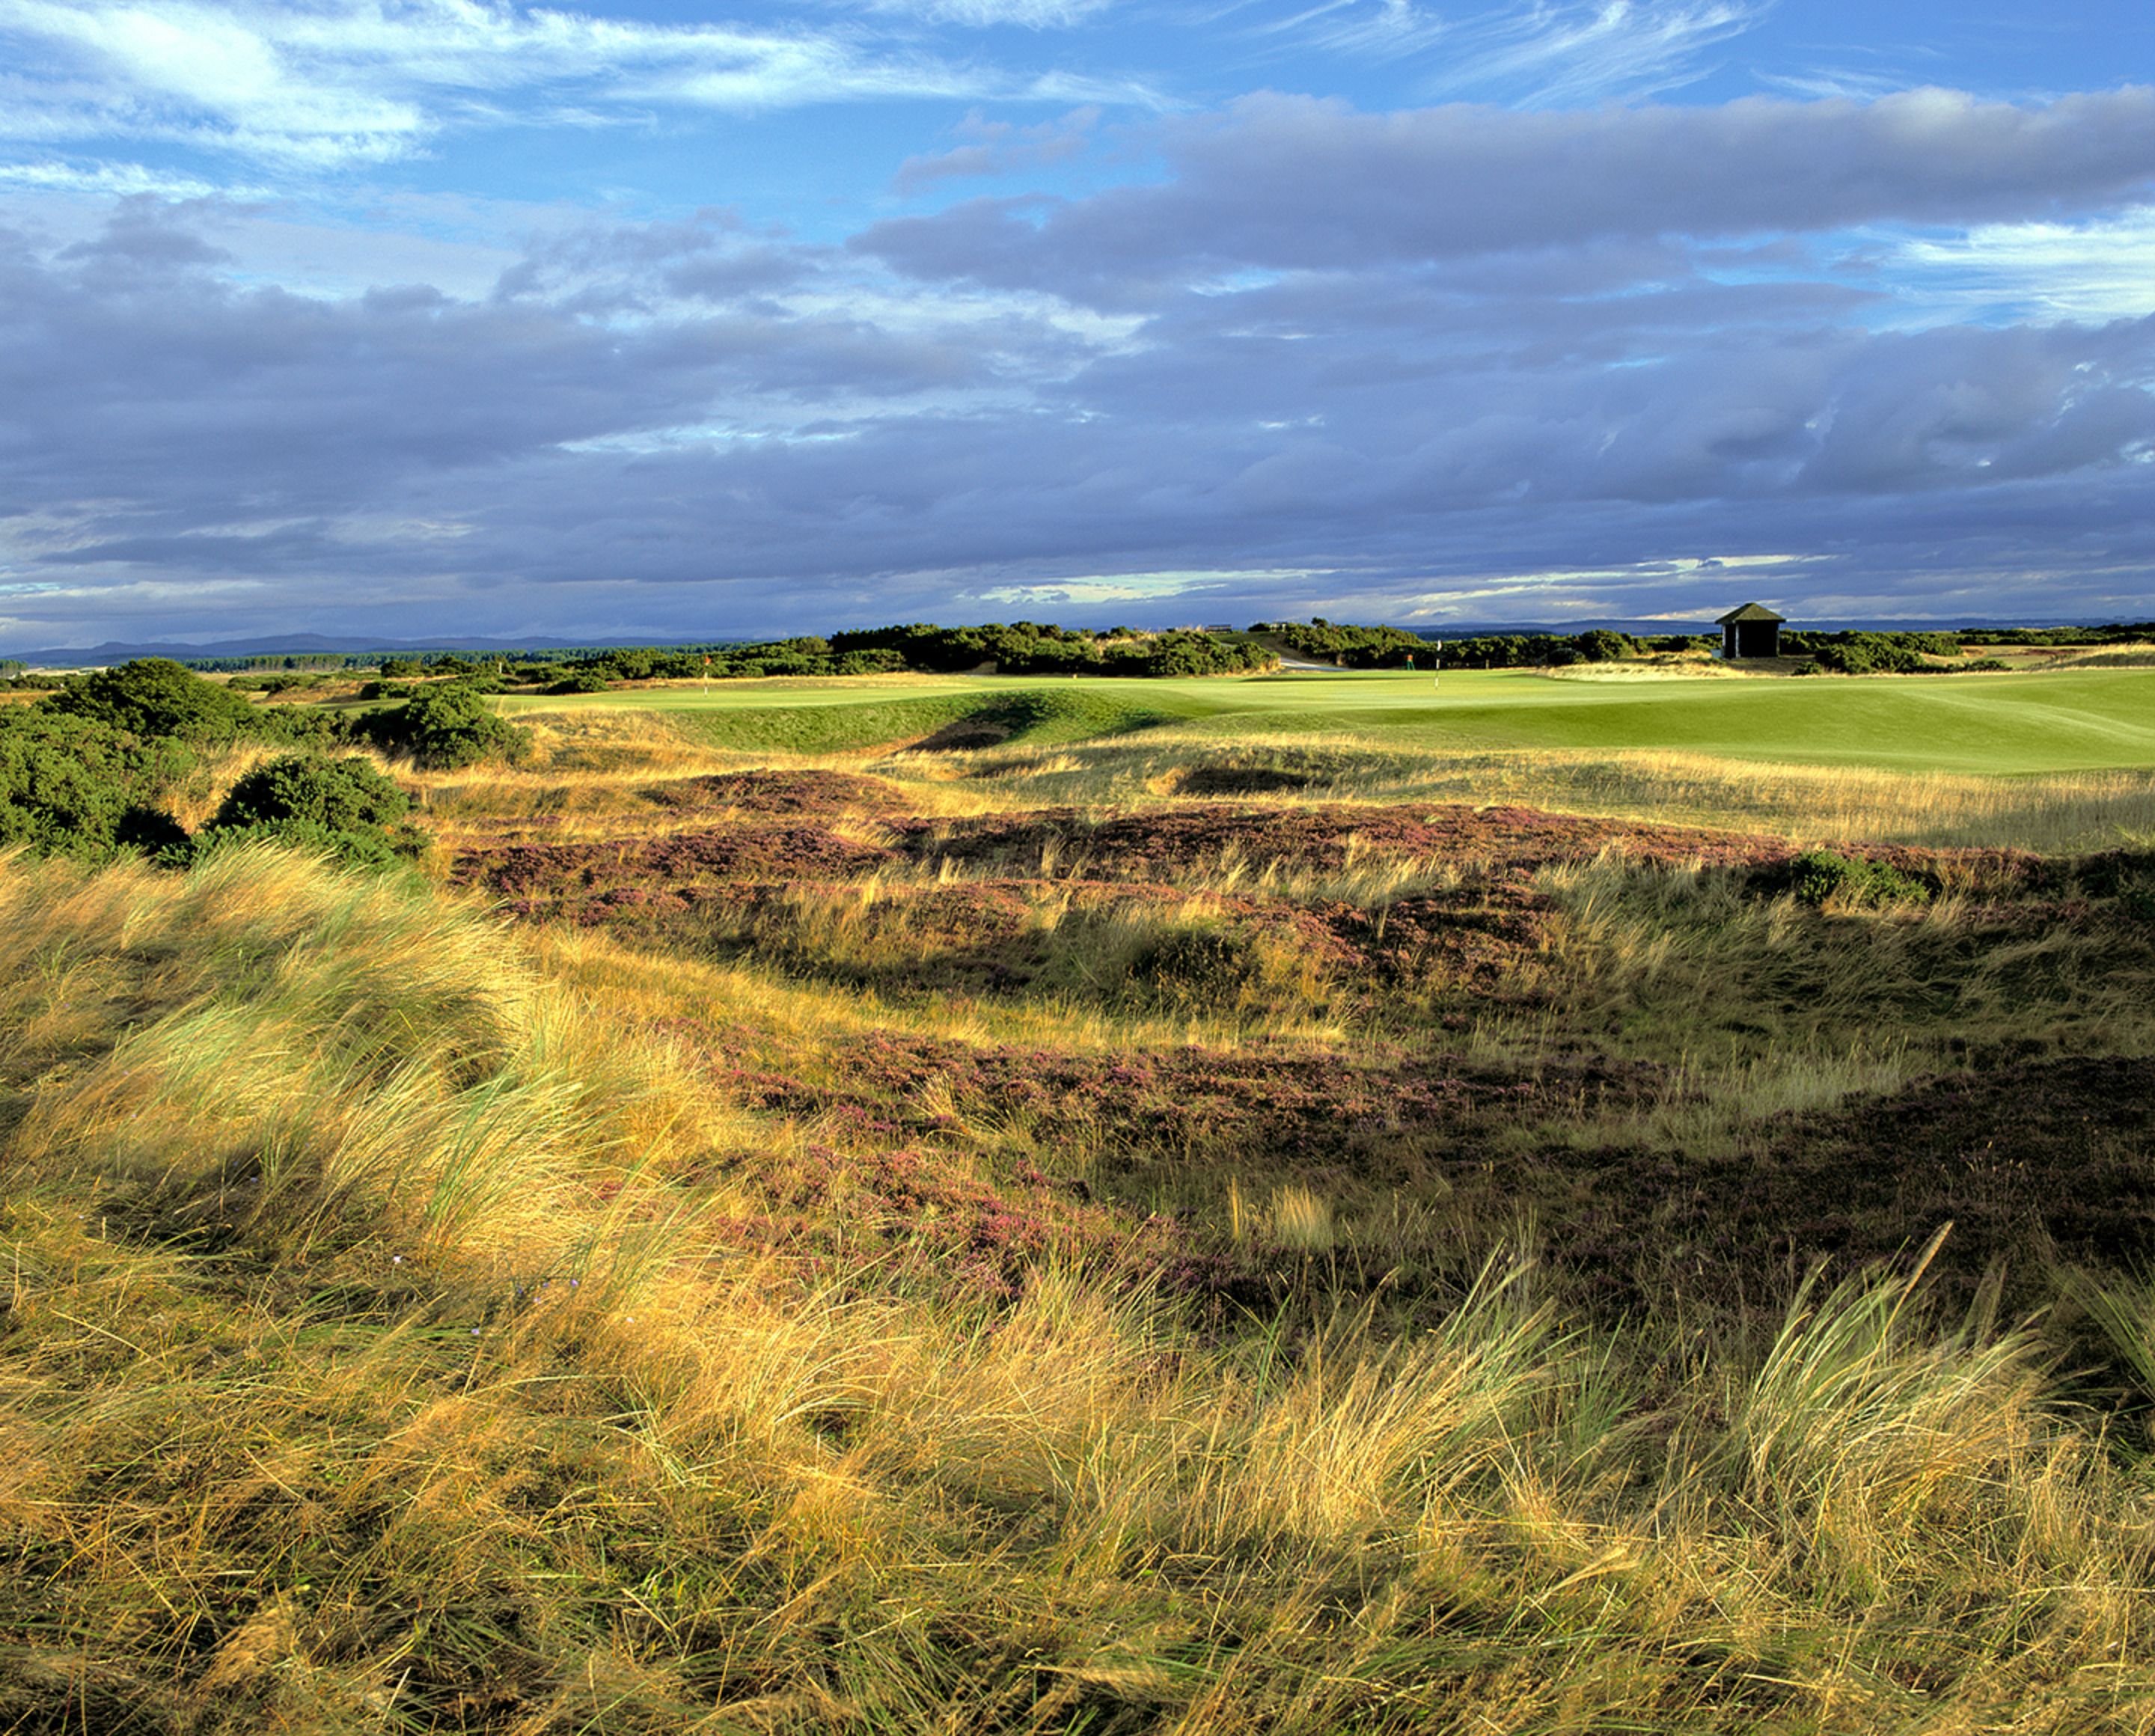 5th & 13th greens, The Old Course at St. Andrews